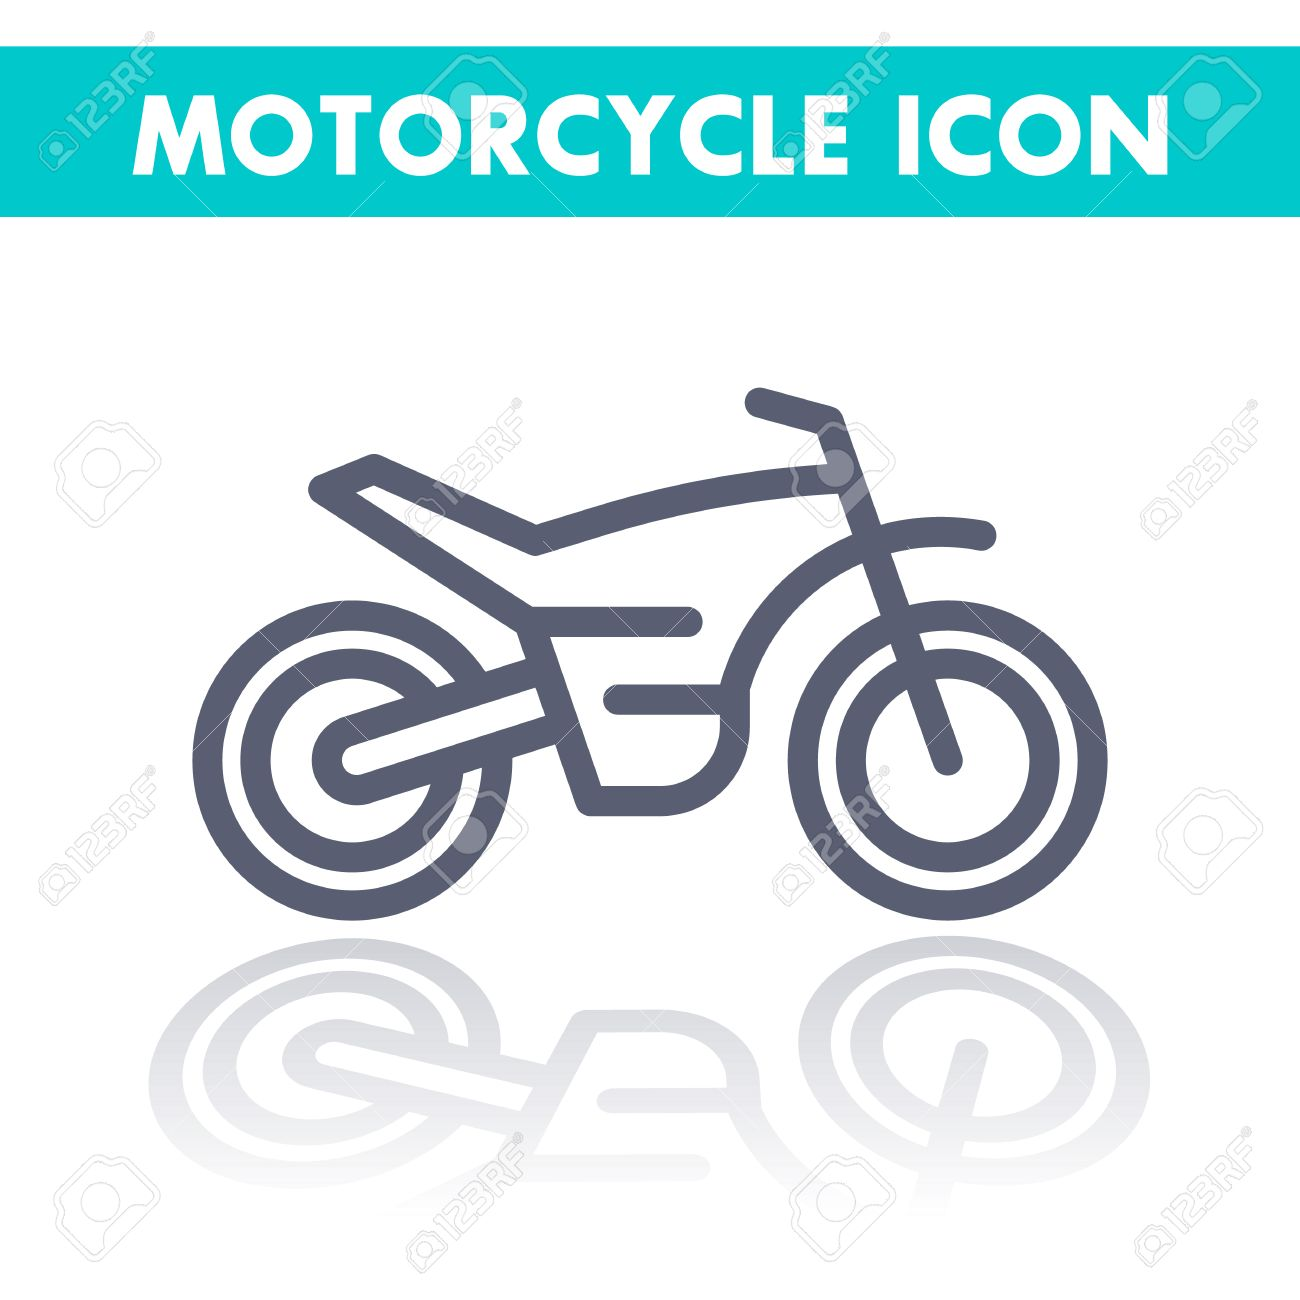 Offroad Bike Motorcycle Linear Icon Motocross Pictogram Line Royalty Free Cliparts Vectors And Stock Illustration Image 57681109